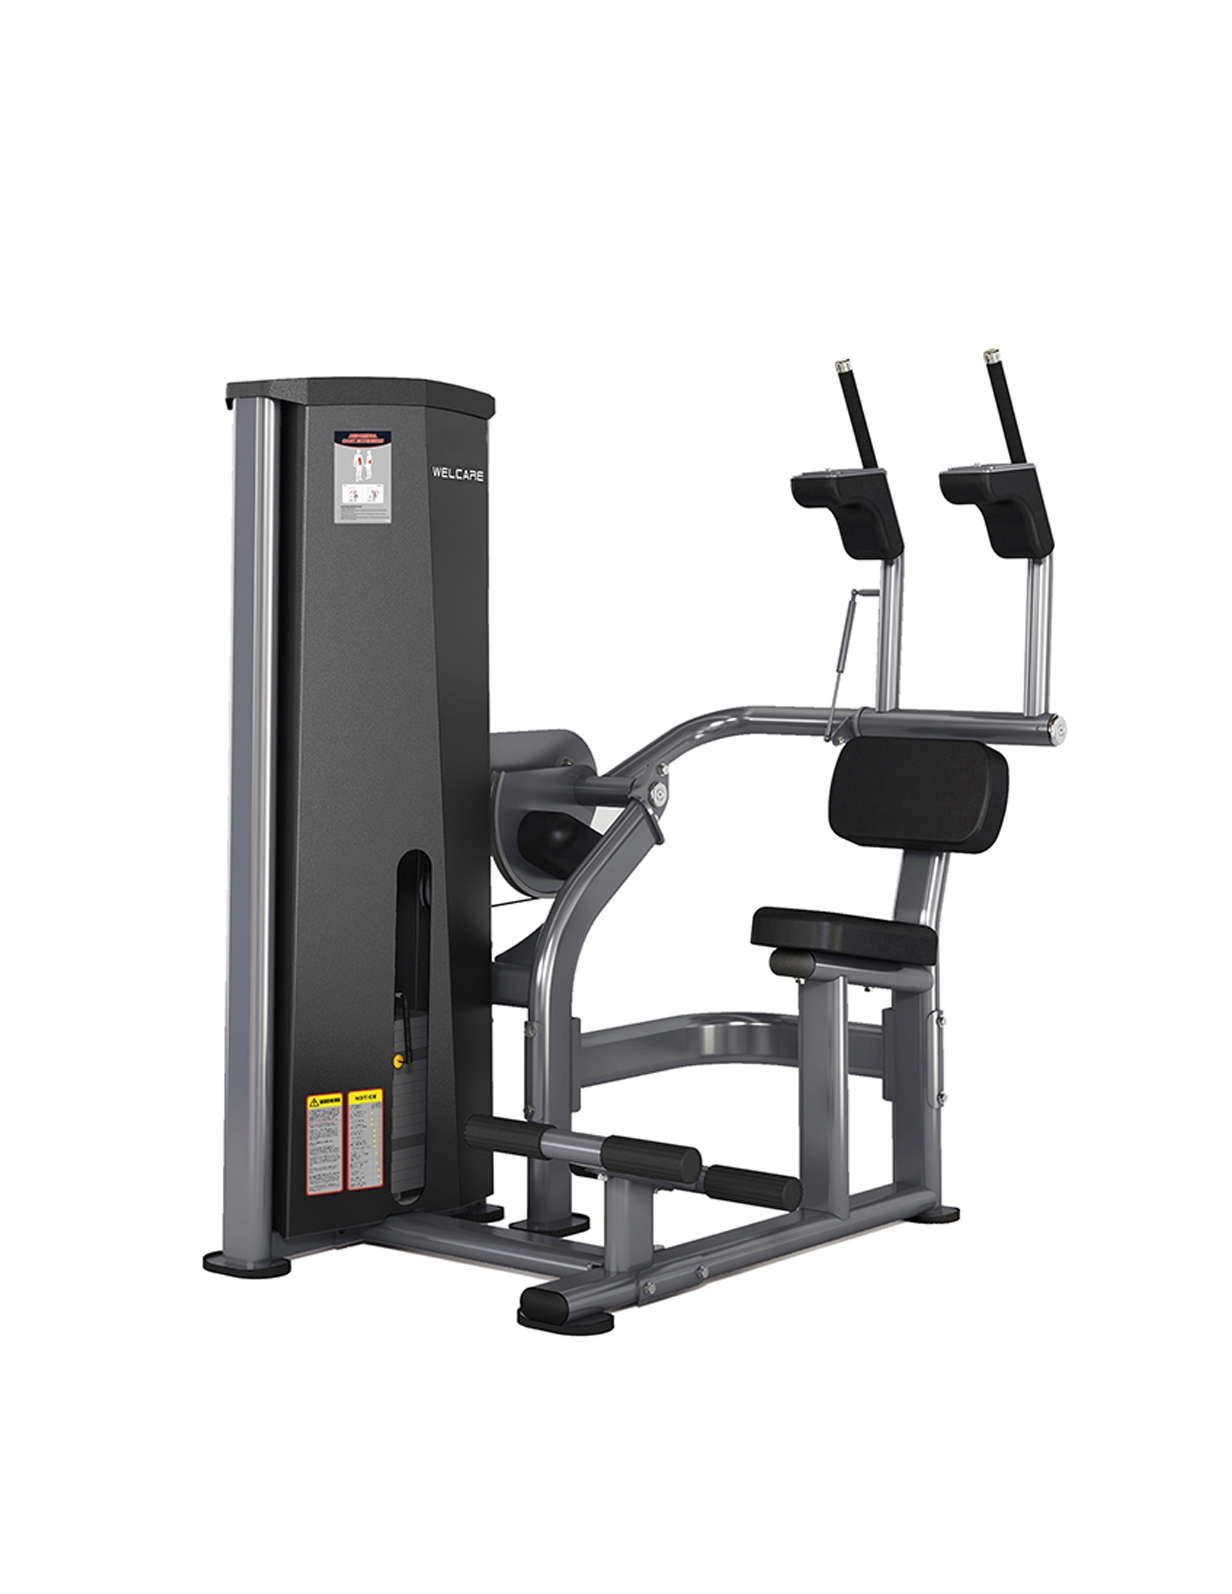 WA027 ABS MACHINE